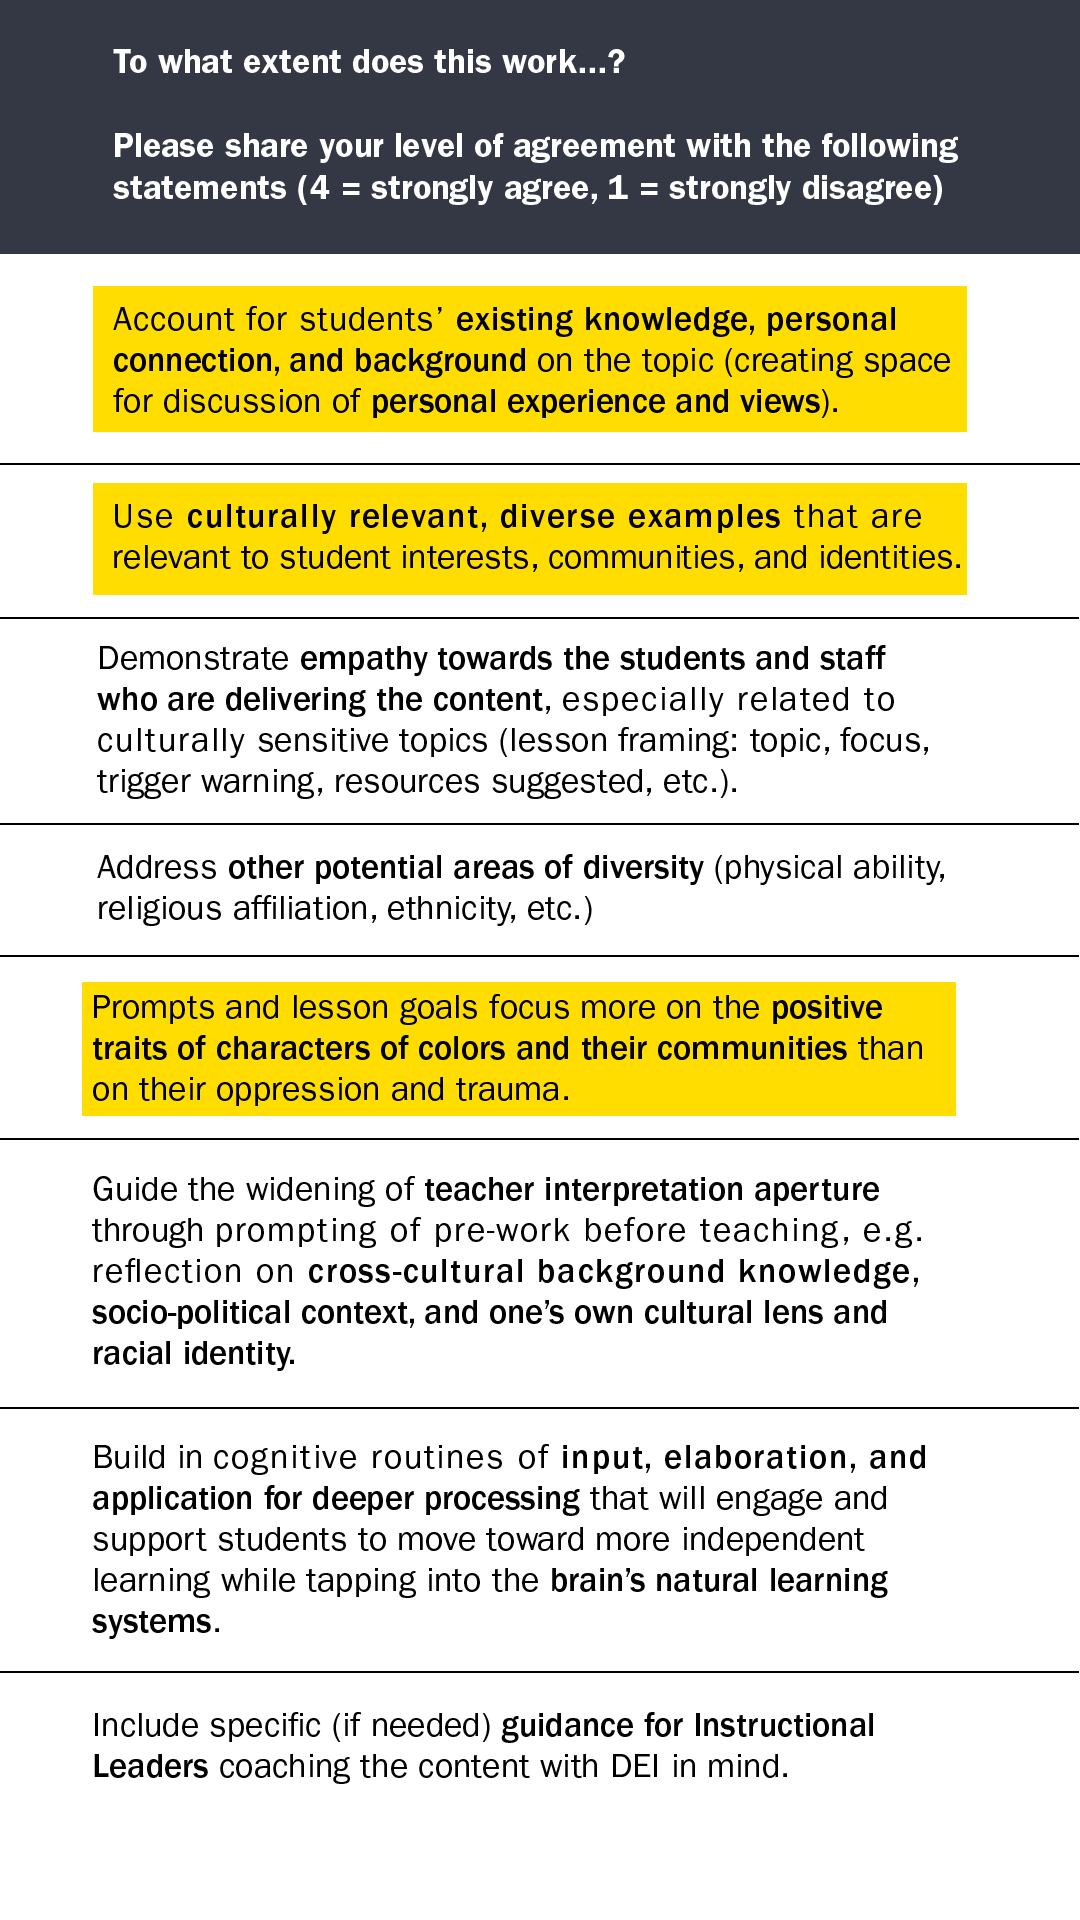 Excerpt of feedback survey for assessing curriculum with the DEI Lens Tool